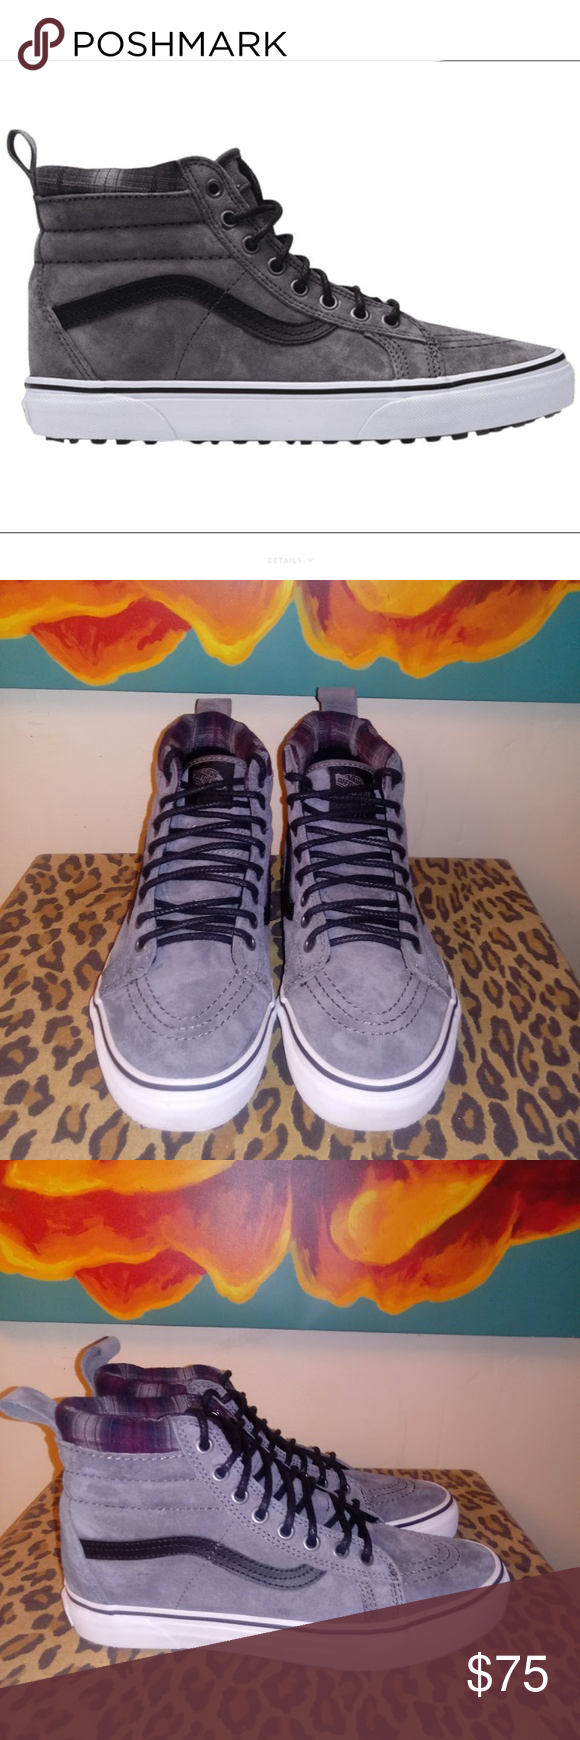 ee6a4fedcaab VANS Sk8-Hi MTE Pewter Plaid Skateboard Shoes BRAND NEW CONDITION! Very  nice gray